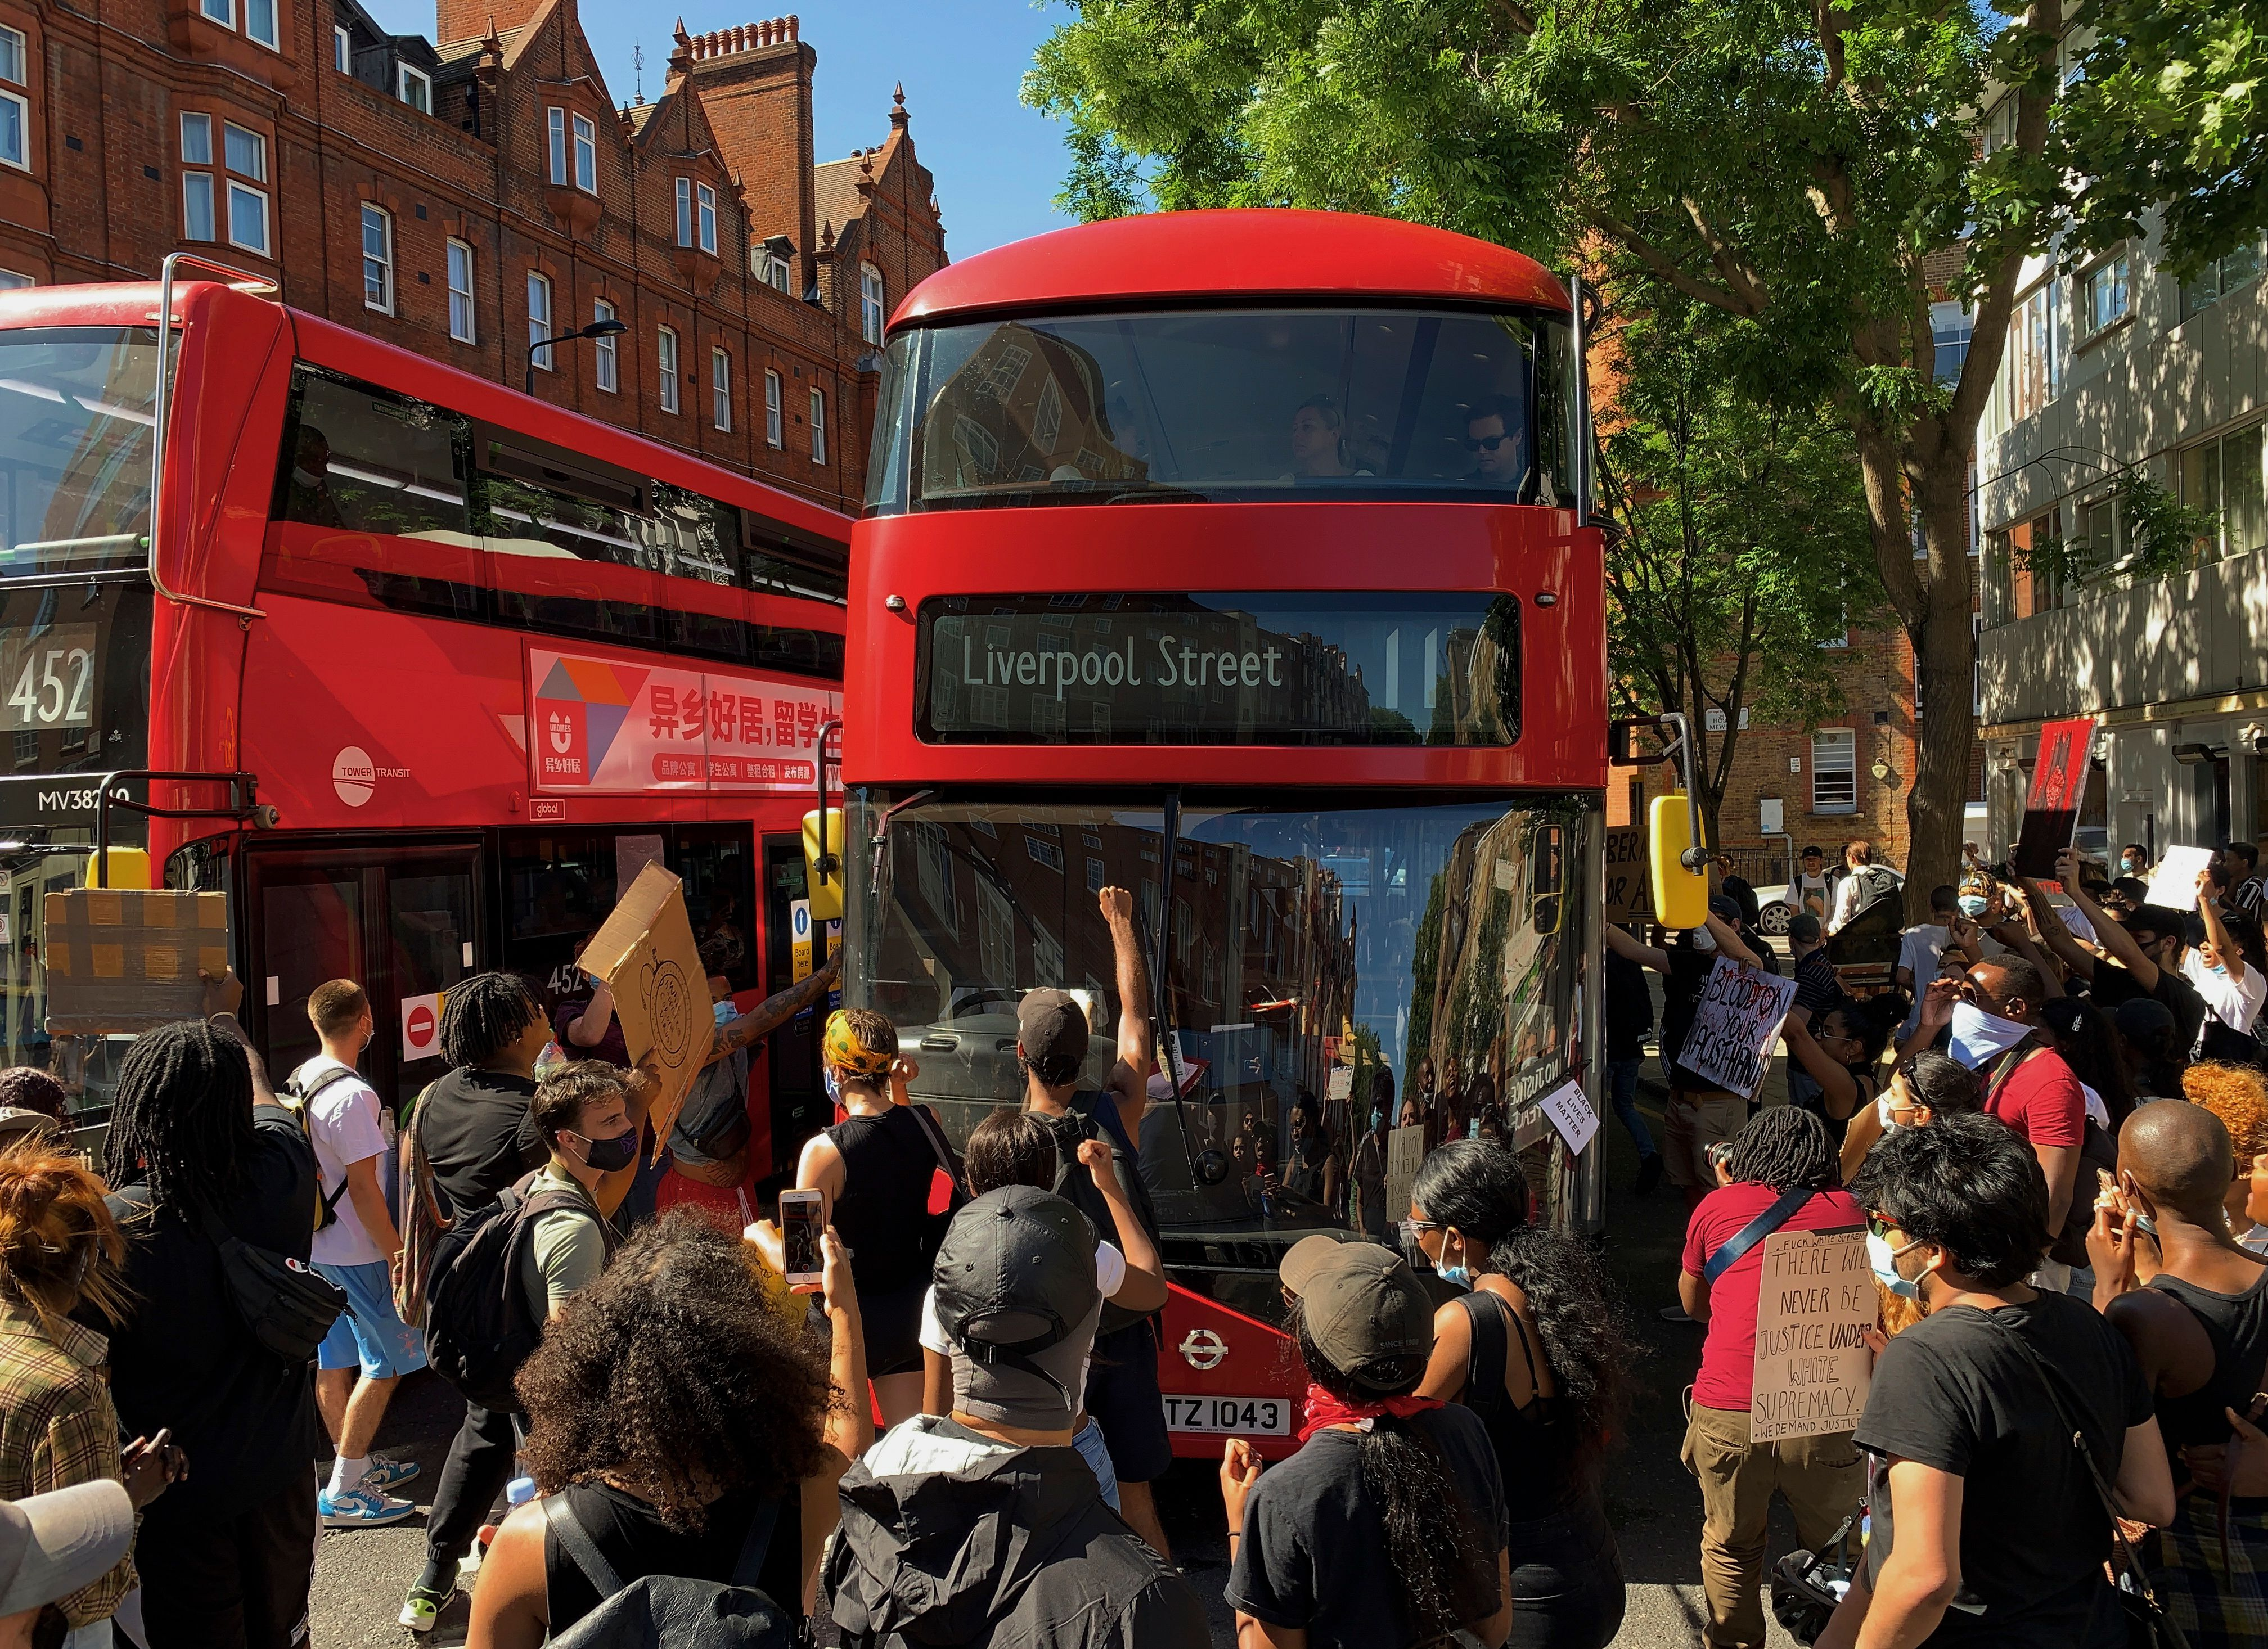 Demonstrators stop a bus as they block the street in Sloane Square in London on May 31, 2020 after marching on the US embassy to protest the death of George Floyd, an unarmed black man who died after a police officer knelt on his neck for nearly nine minutes during an arrest in Minneapolis, USA. - Hundreds gathered in central London and marched to the US Embassy to protest the death of an unarmed black man in Minneapolis while in police custody that has sparked days of unrest in the US city and beyond. (Photo by DANIEL LEAL-OLIVAS / AFP) (Photo by DANIEL LEAL-OLIVAS/AFP via Getty Images)